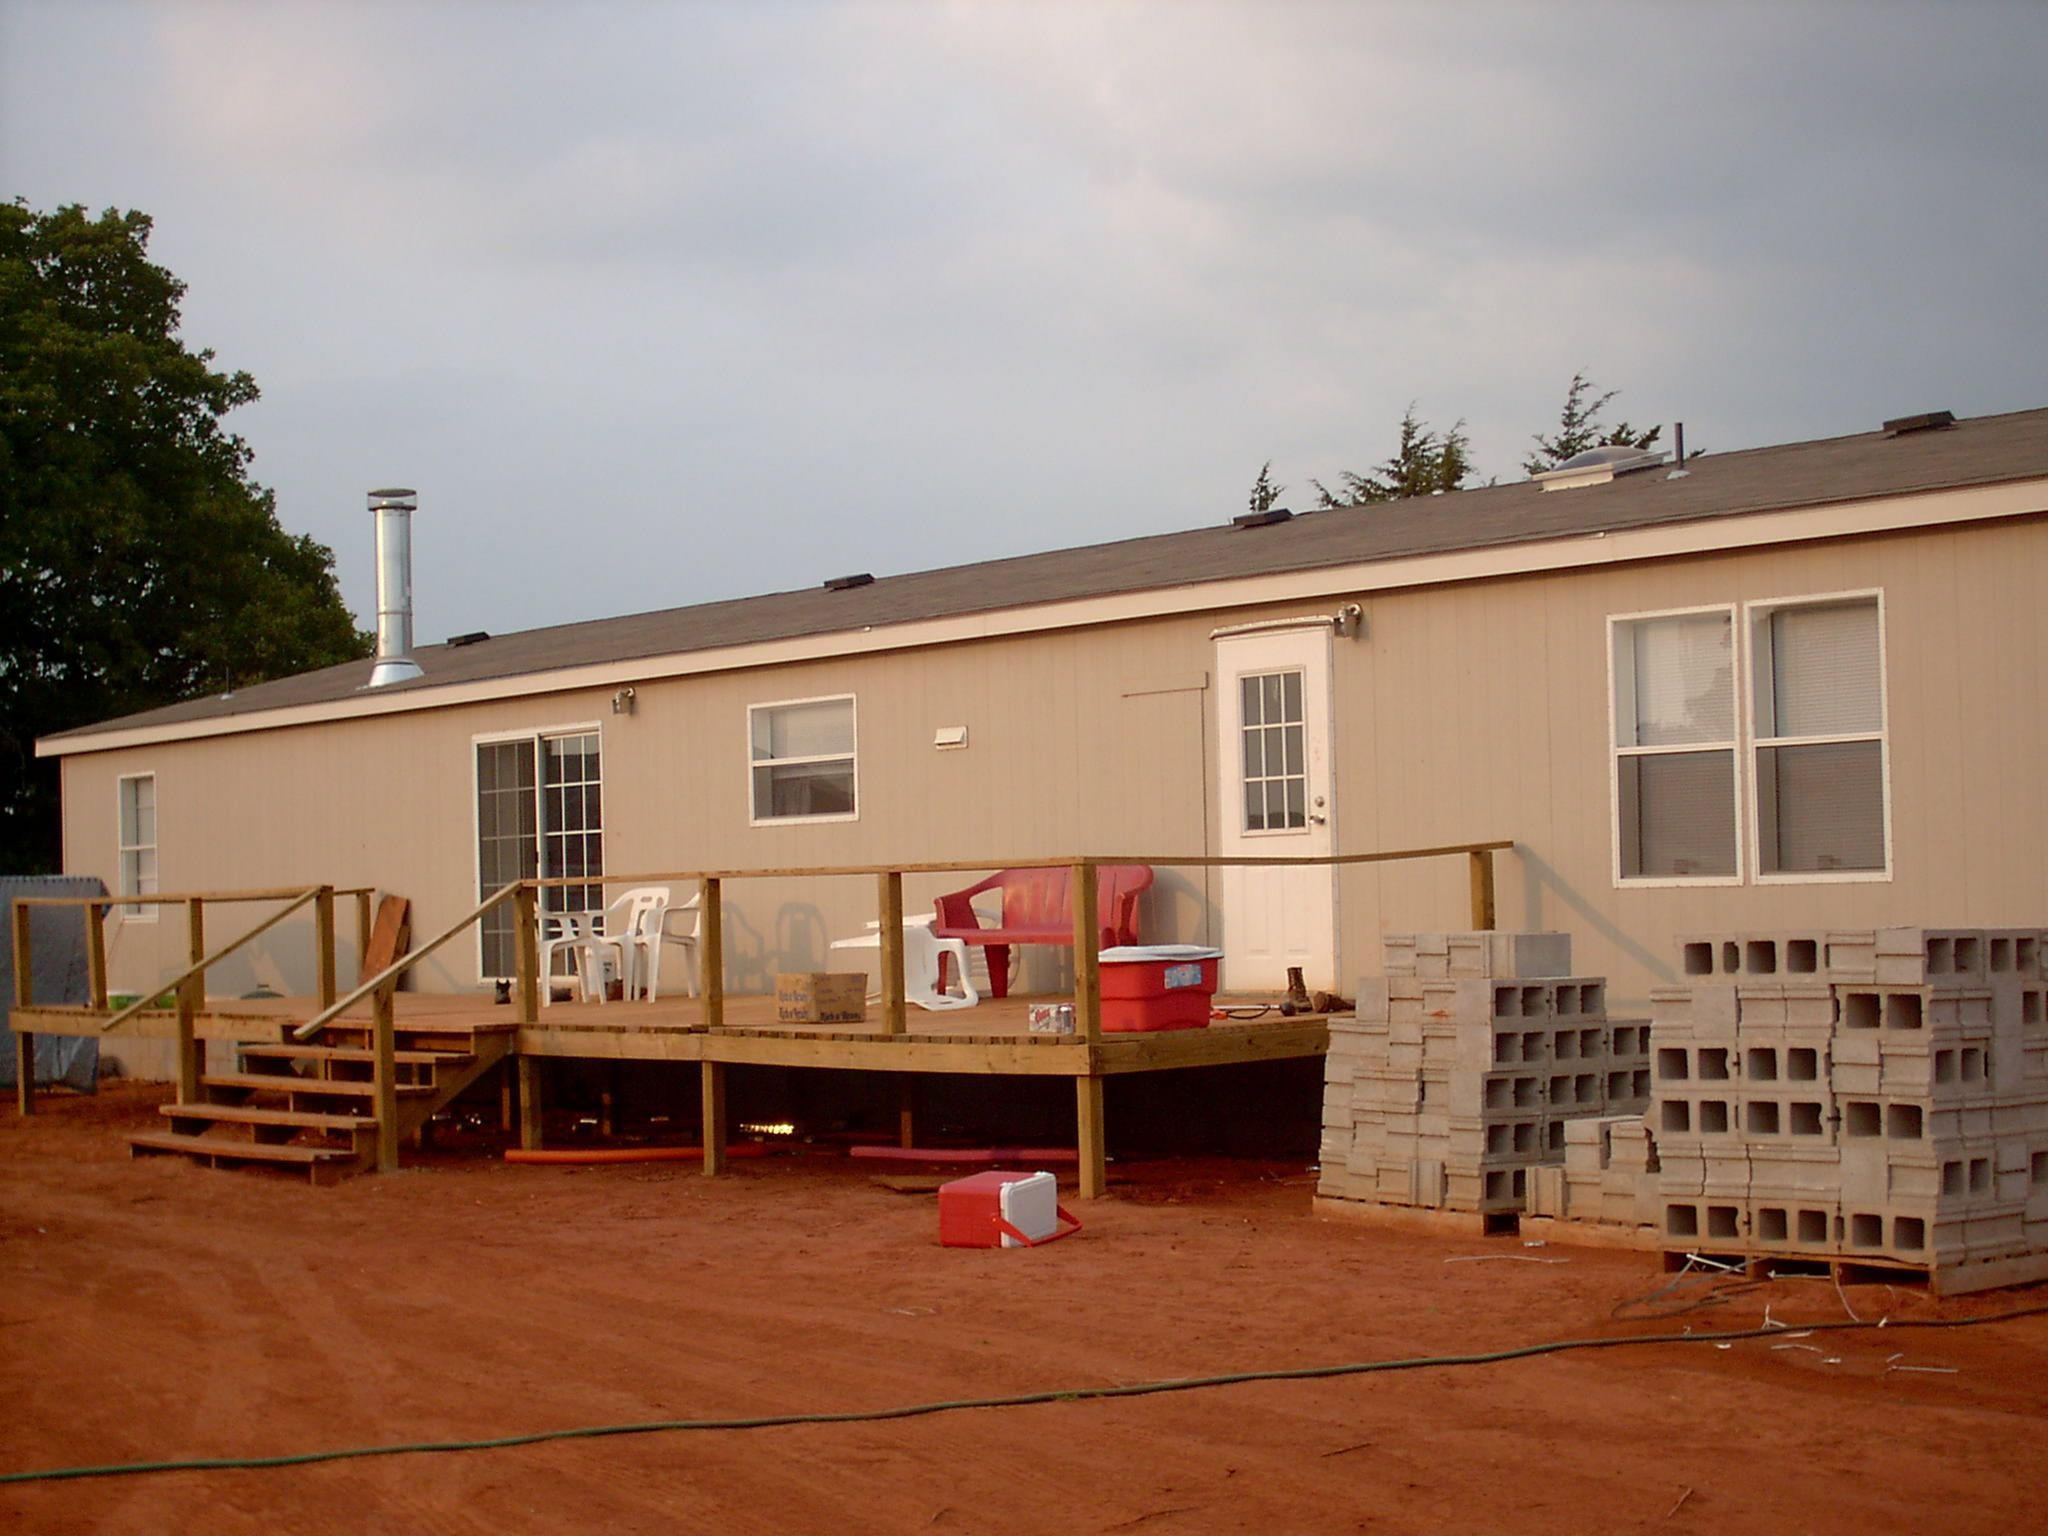 Sublime 15 Top And Inexpensive Mobile Home Remodel Ideas https//smartrvcamper.com/15 top and ...